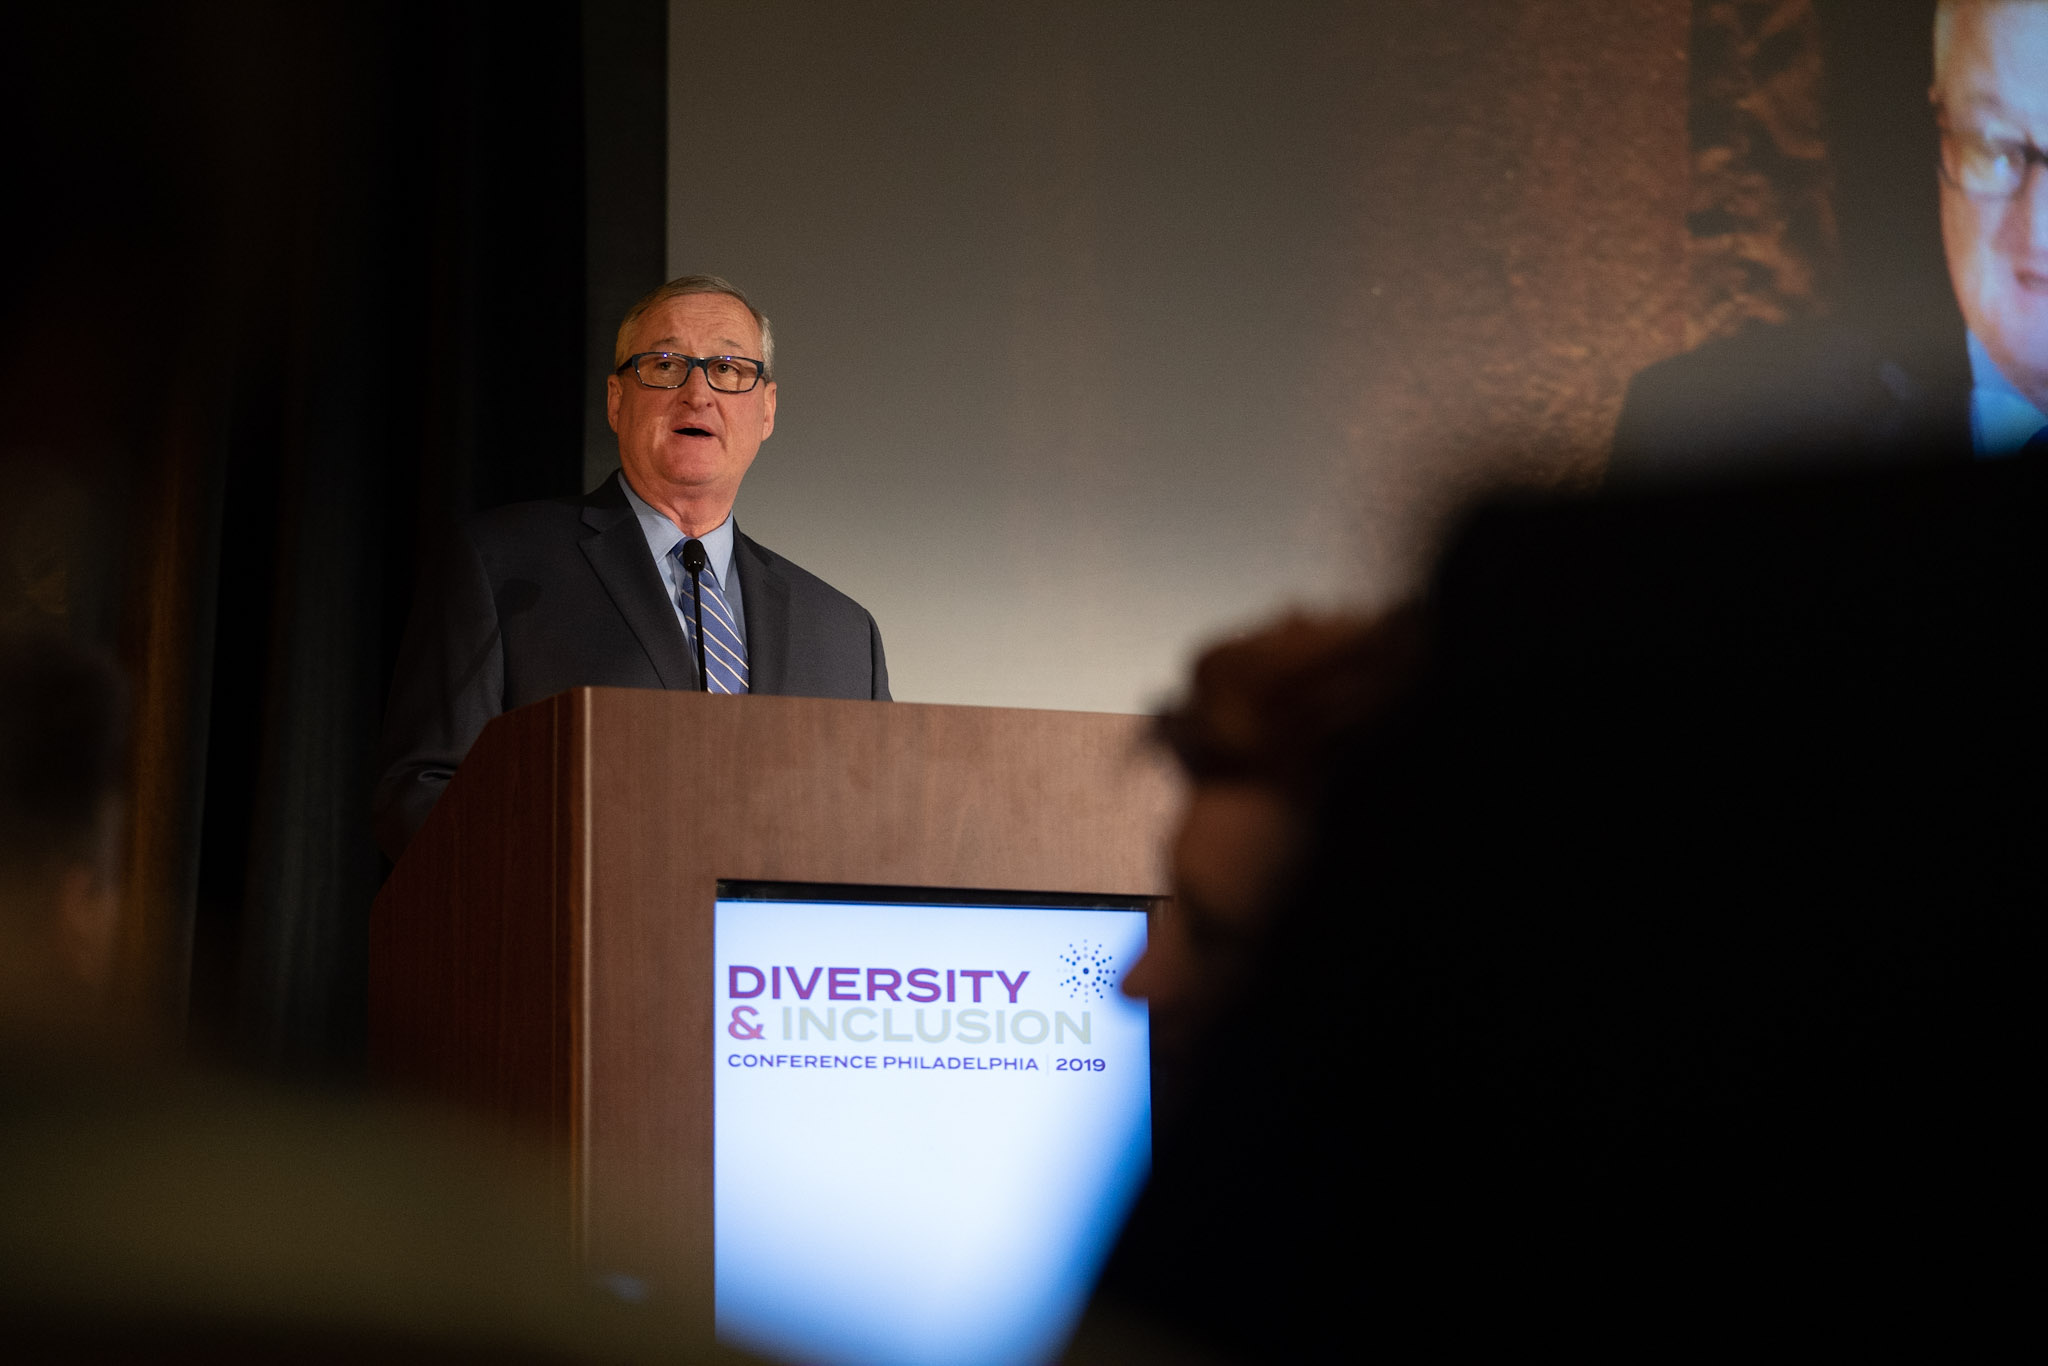 2019 Philadelphia Diversity & Inclusion Conference-107039-March 25, 2019101.jpg